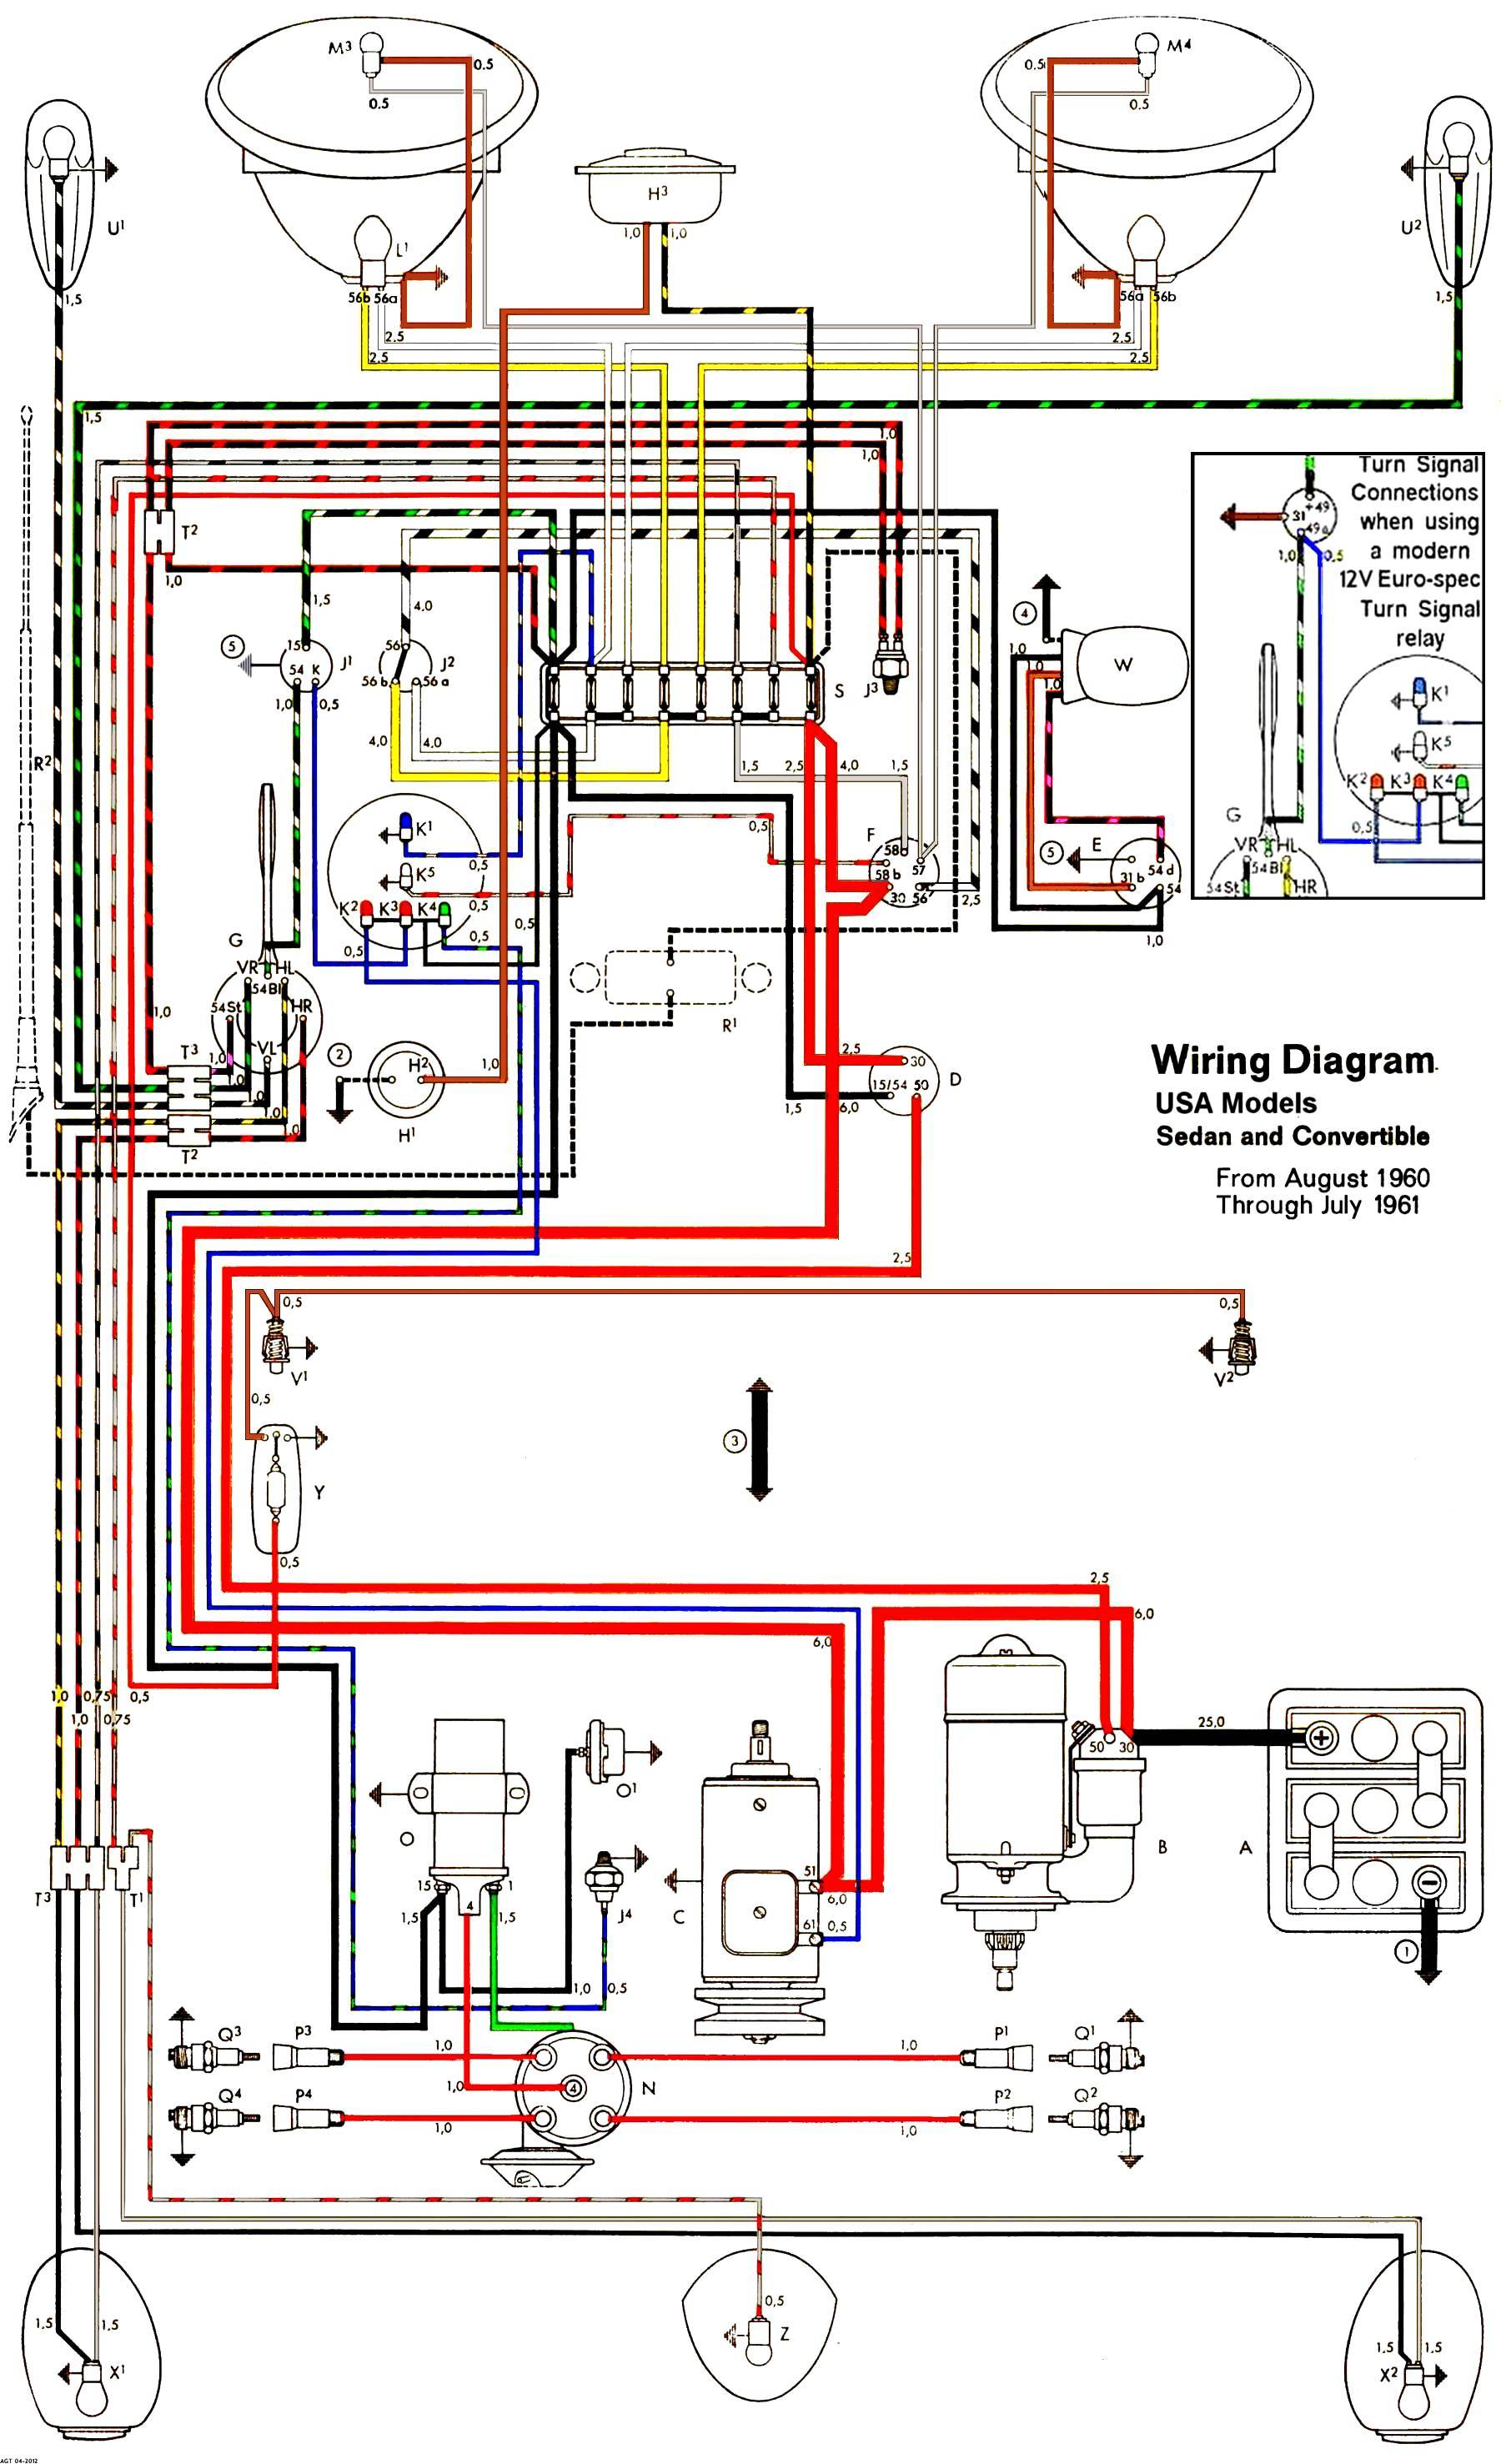 1961USA T1 thesamba com type 1 wiring diagrams 1970 vw beetle wiring diagram at n-0.co